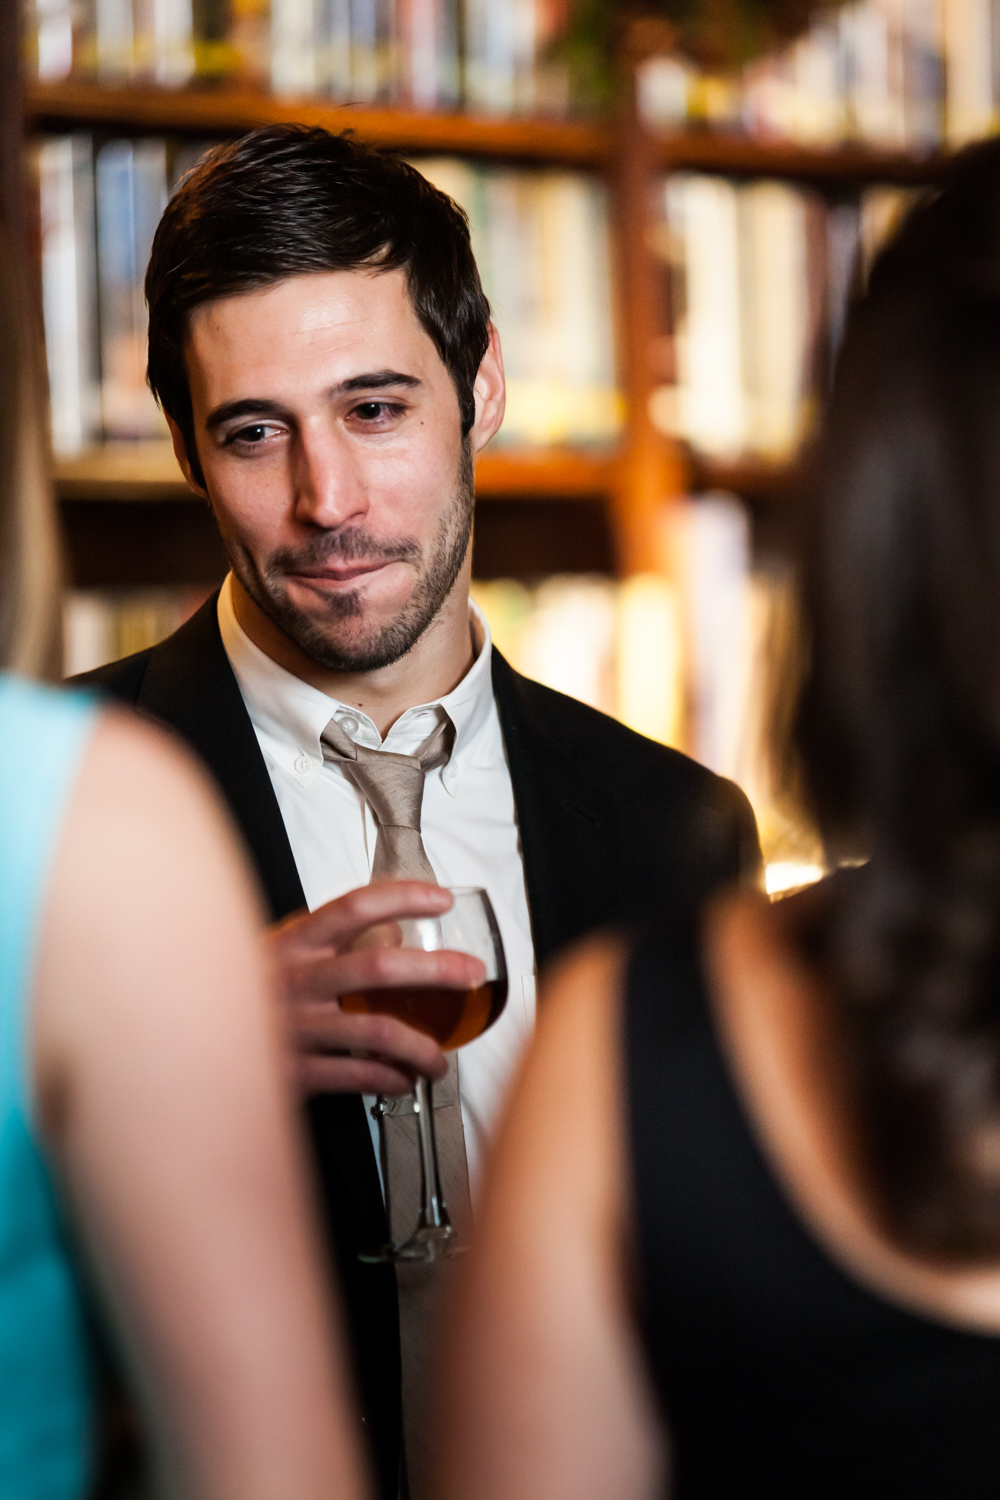 Man holding wine glass and listening to guests